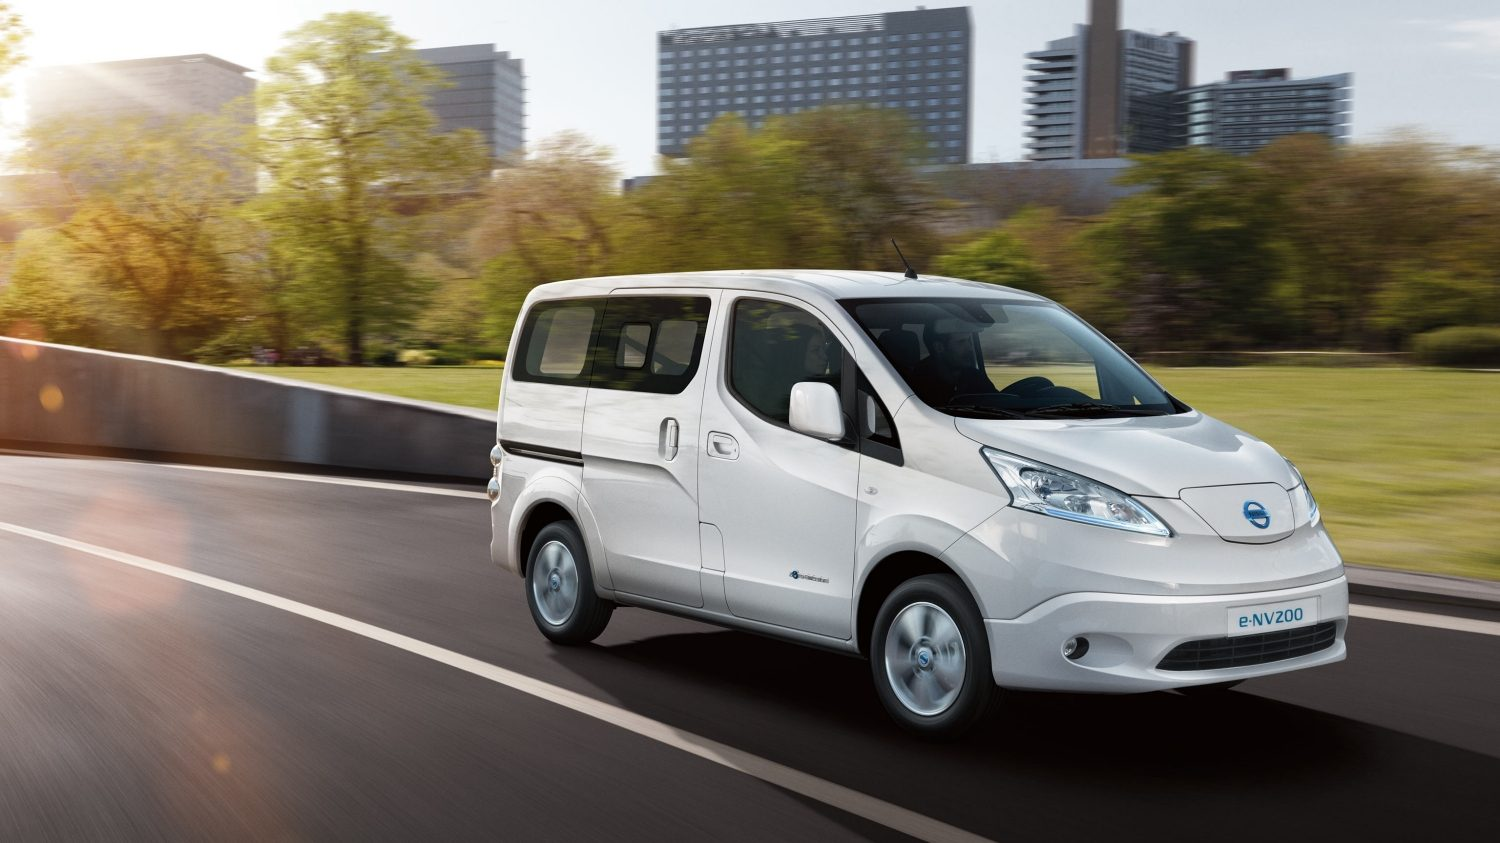 e-NV200 action 3/4 front drivers side